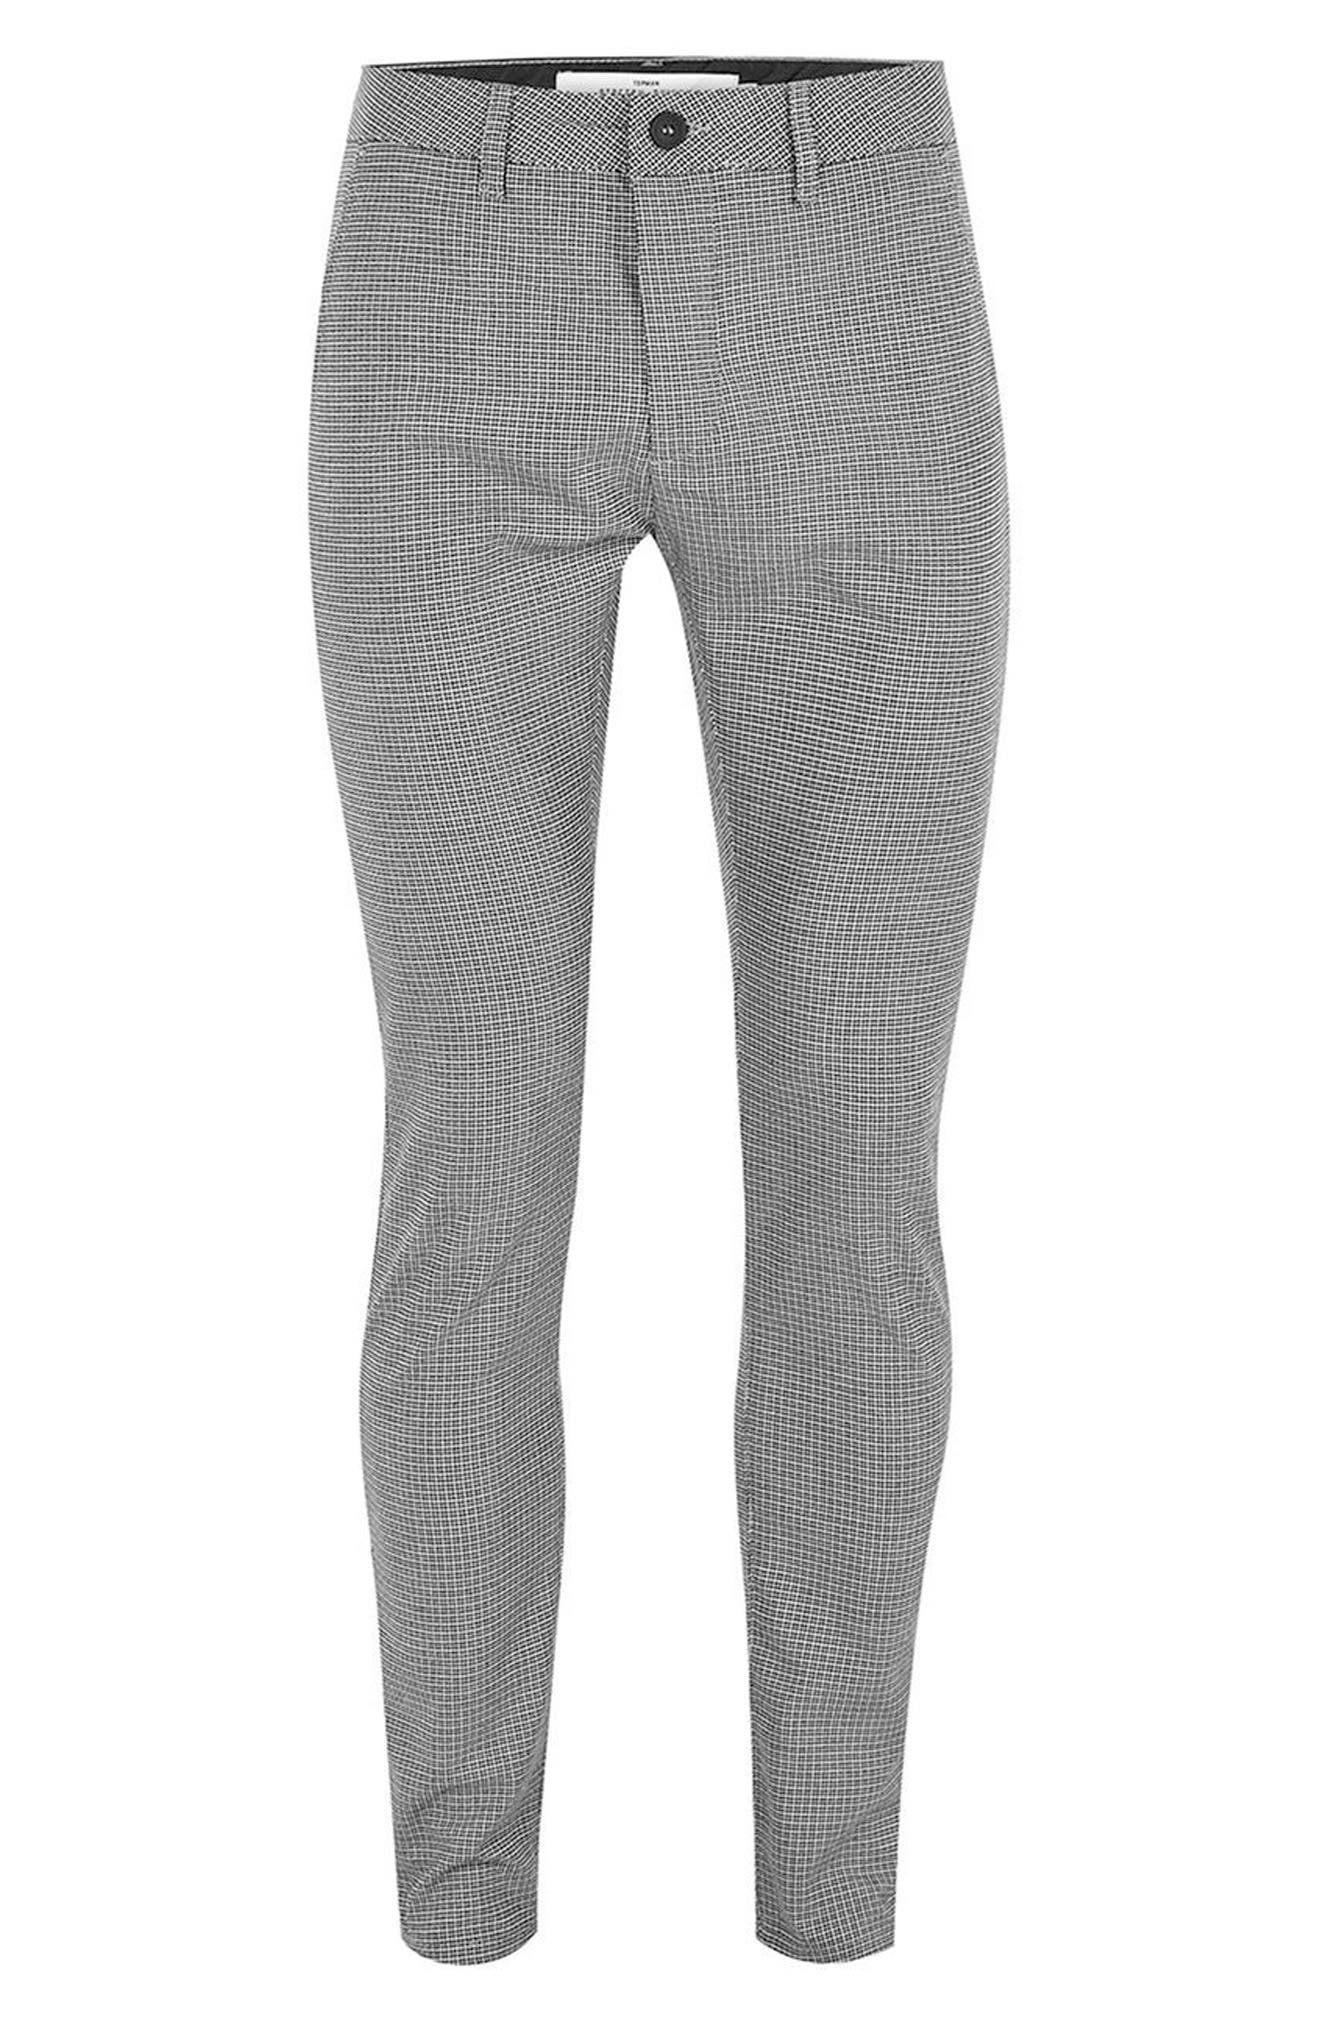 Mini Houndstooth Stretch Skinny Fit Trousers,                             Alternate thumbnail 4, color,                             Grey Multi